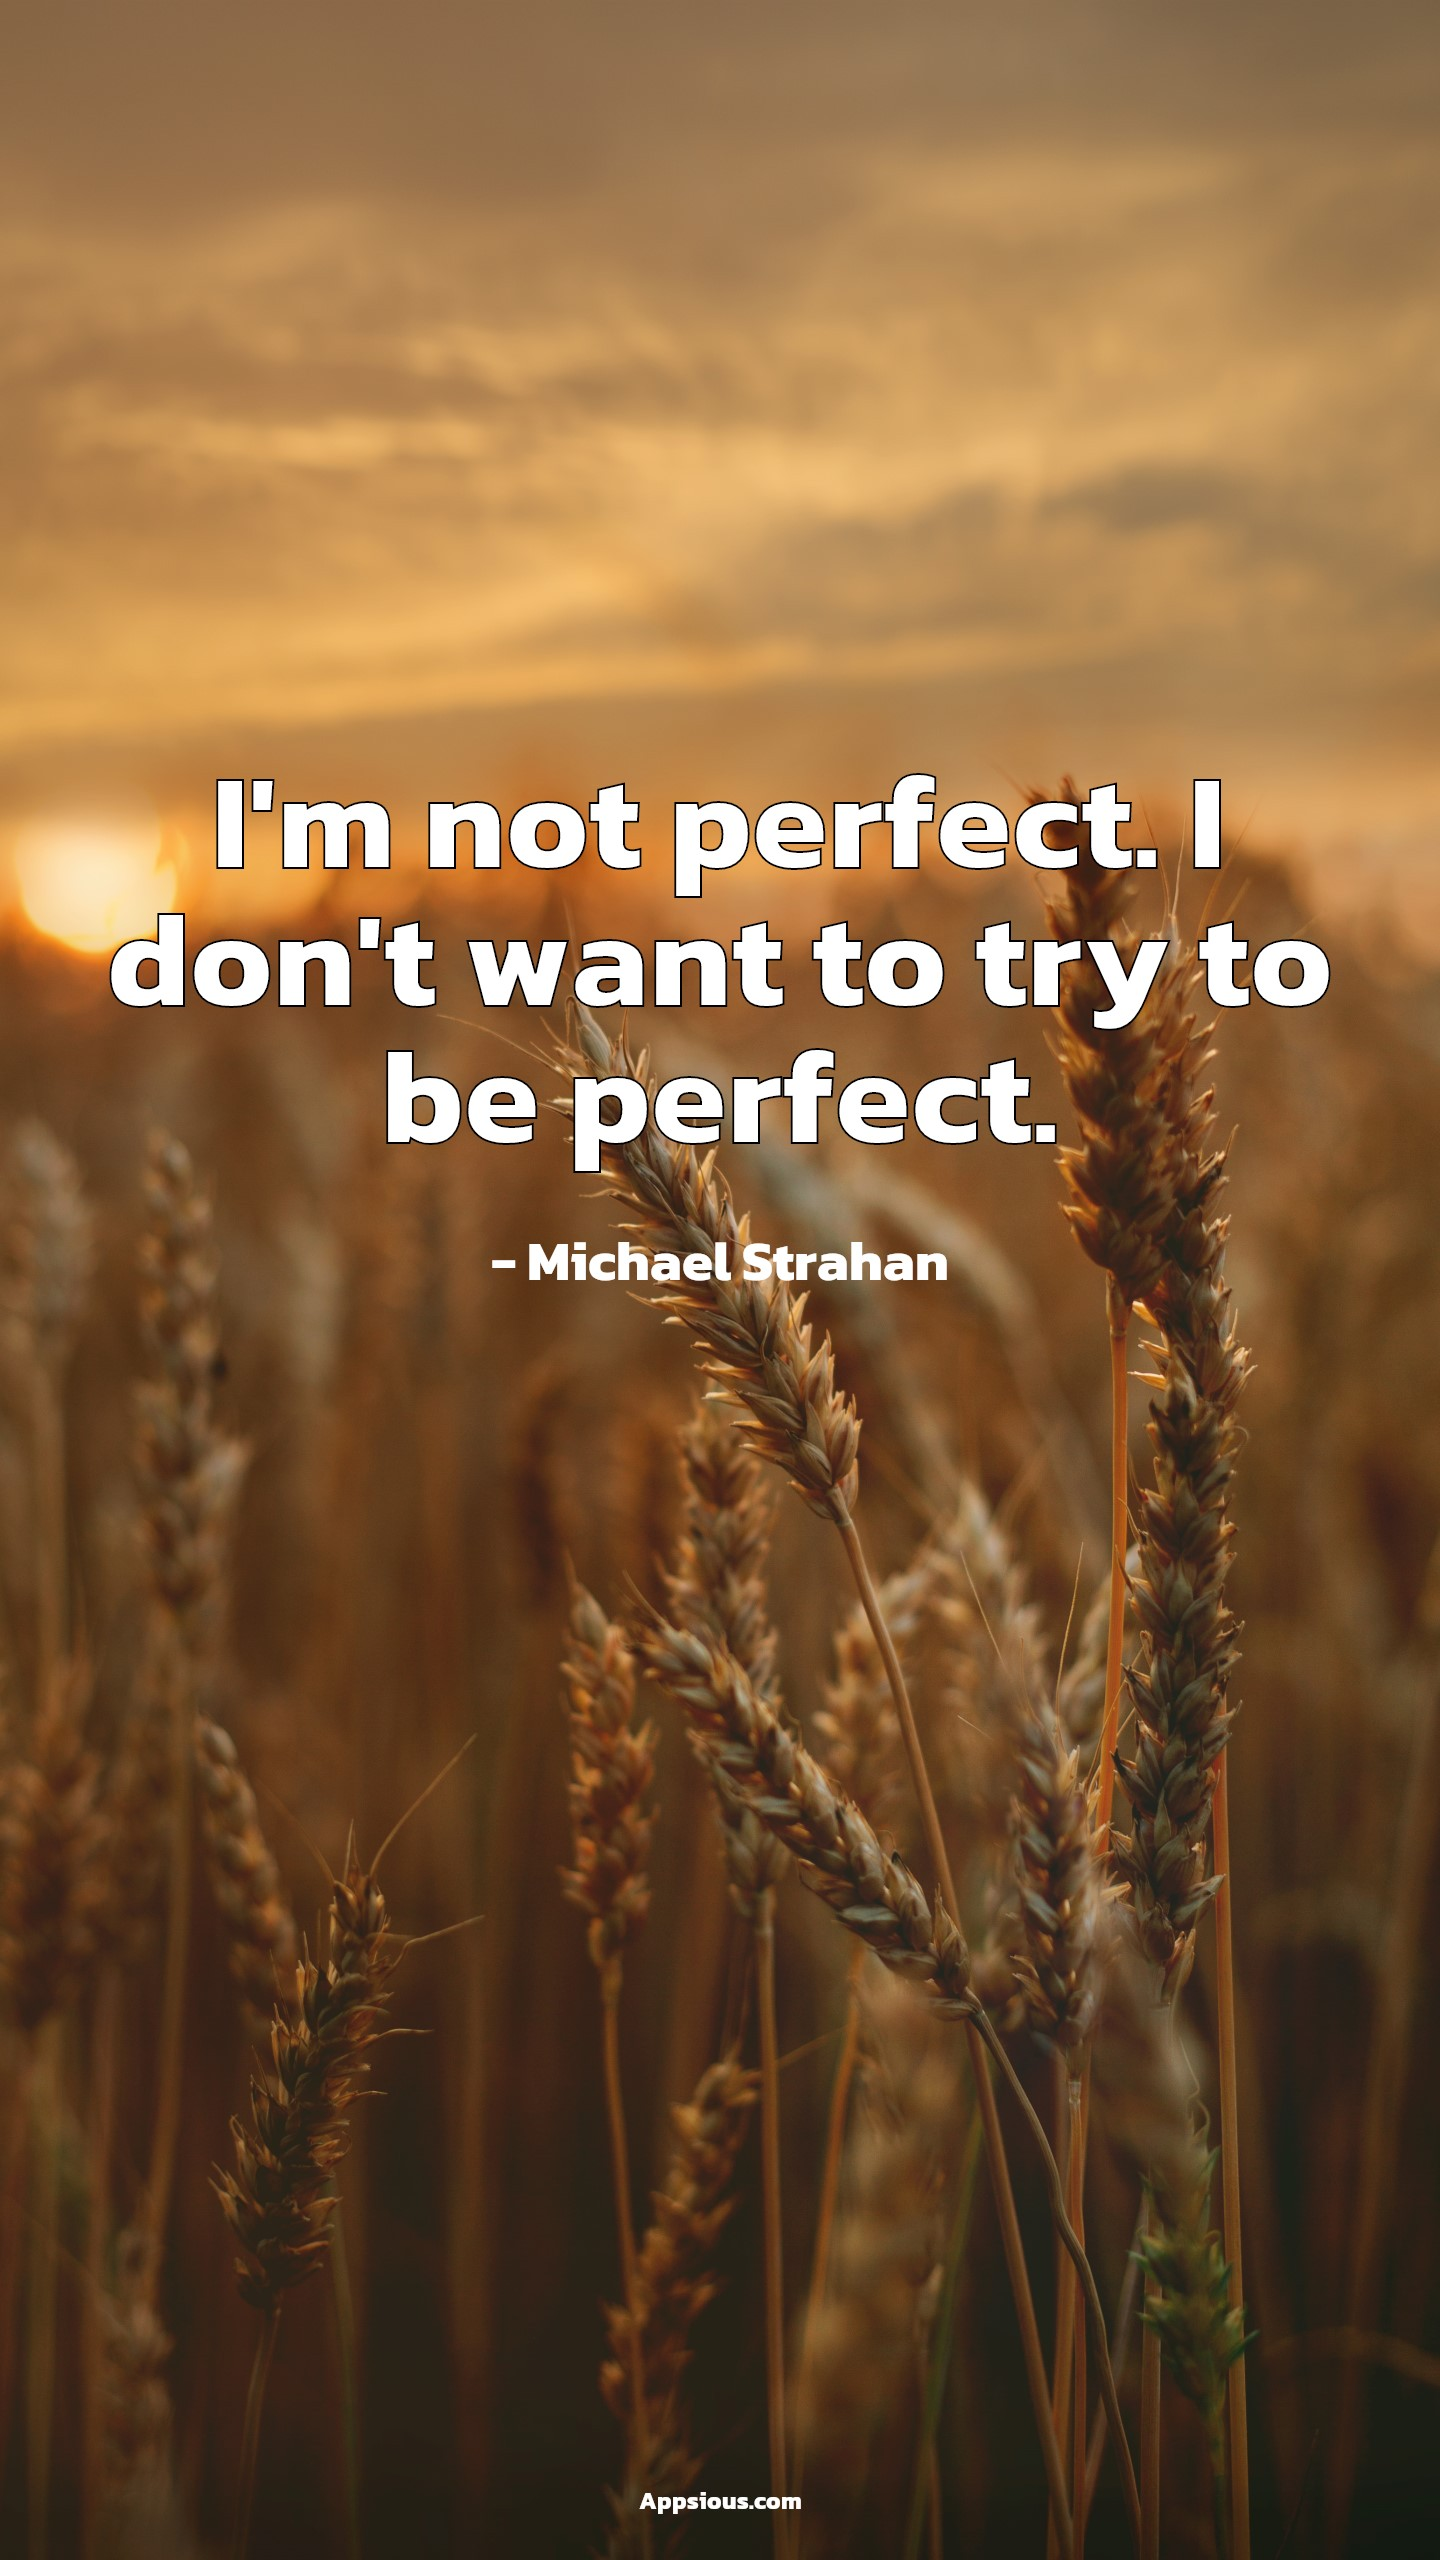 I'm not perfect. I don't want to try to be perfect.